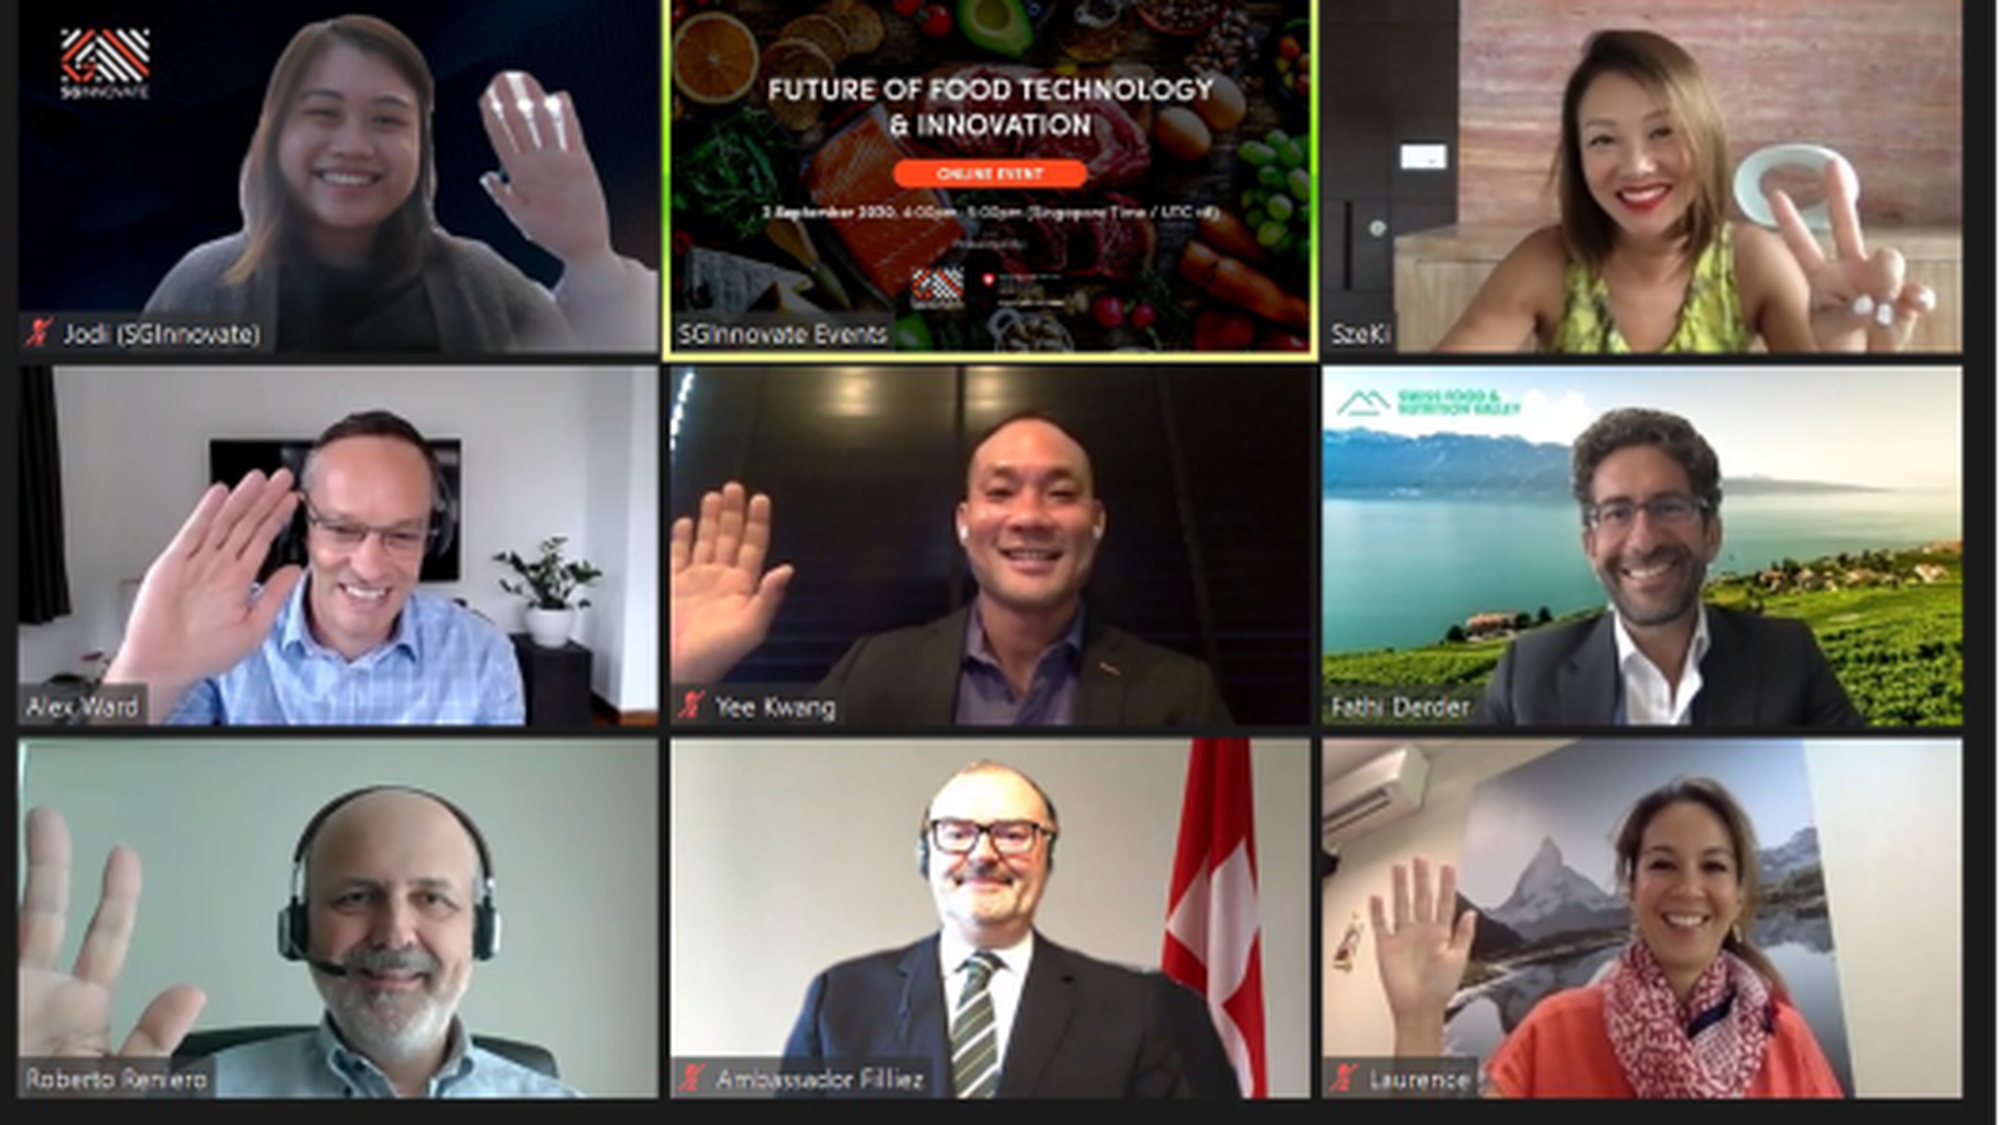 Open discussion on the Future of Food Technology and Innovation via Zoom